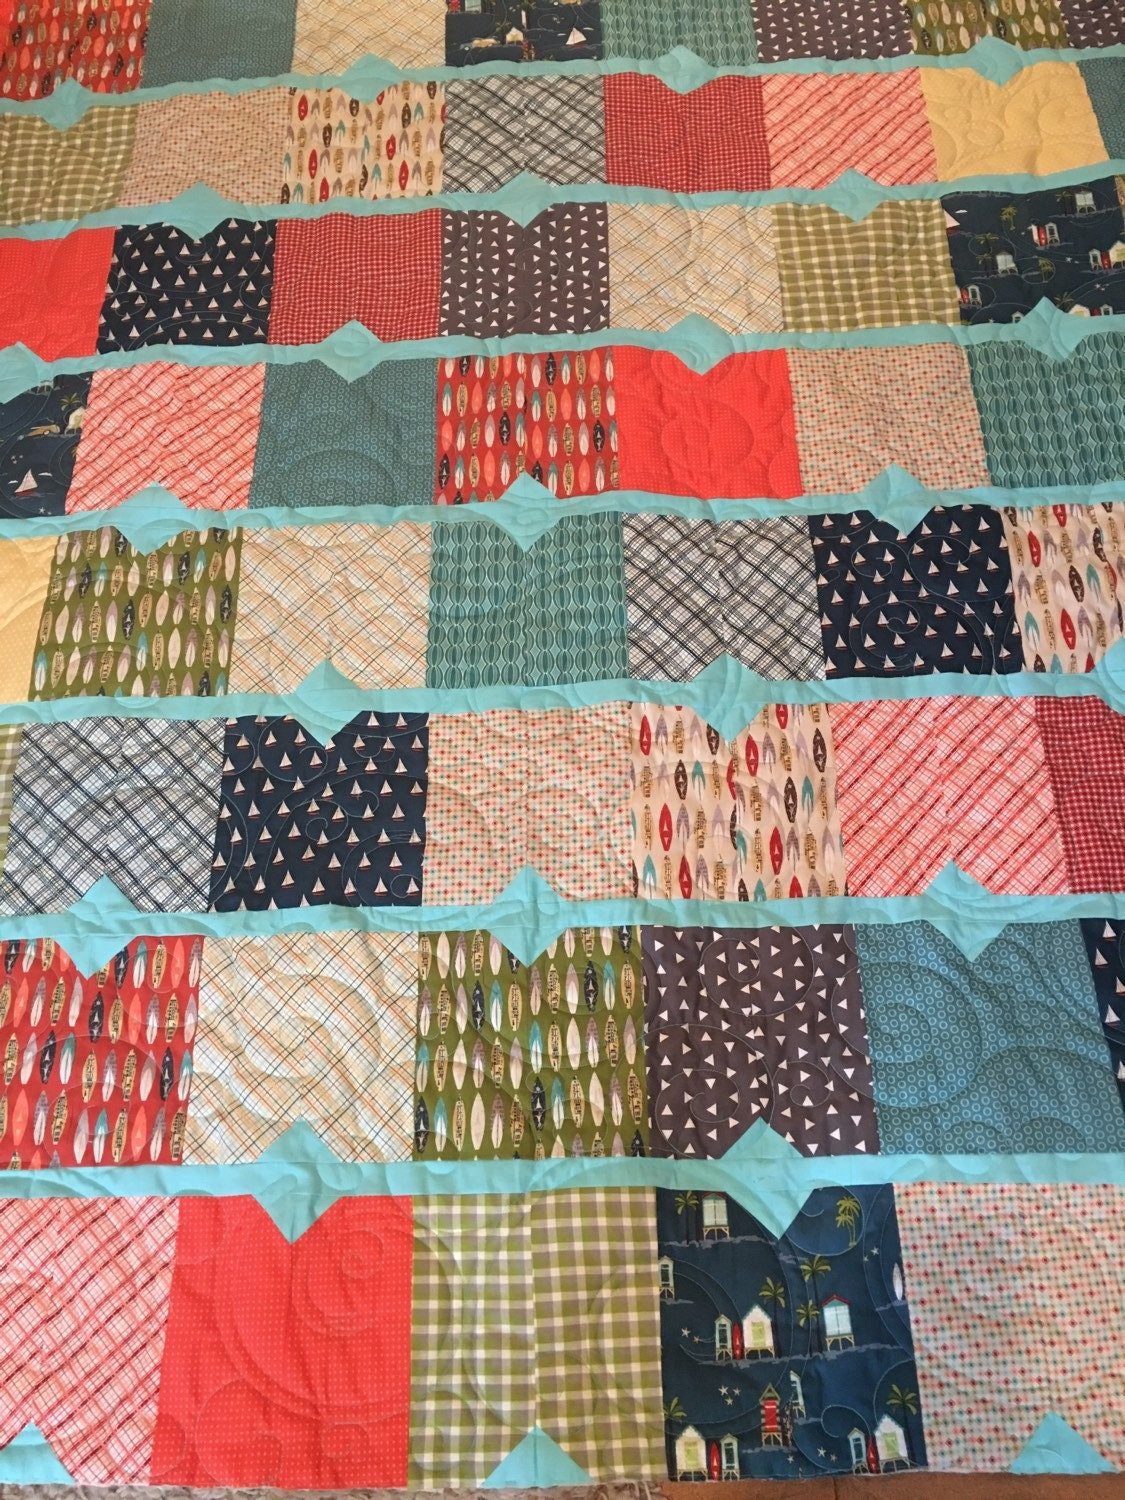 quilts for sale homemade quilts handmade quilts modern  -  quilts for sale homemade quilts handmade quilts modern quiltsvintage quilts beach quilts new quilts